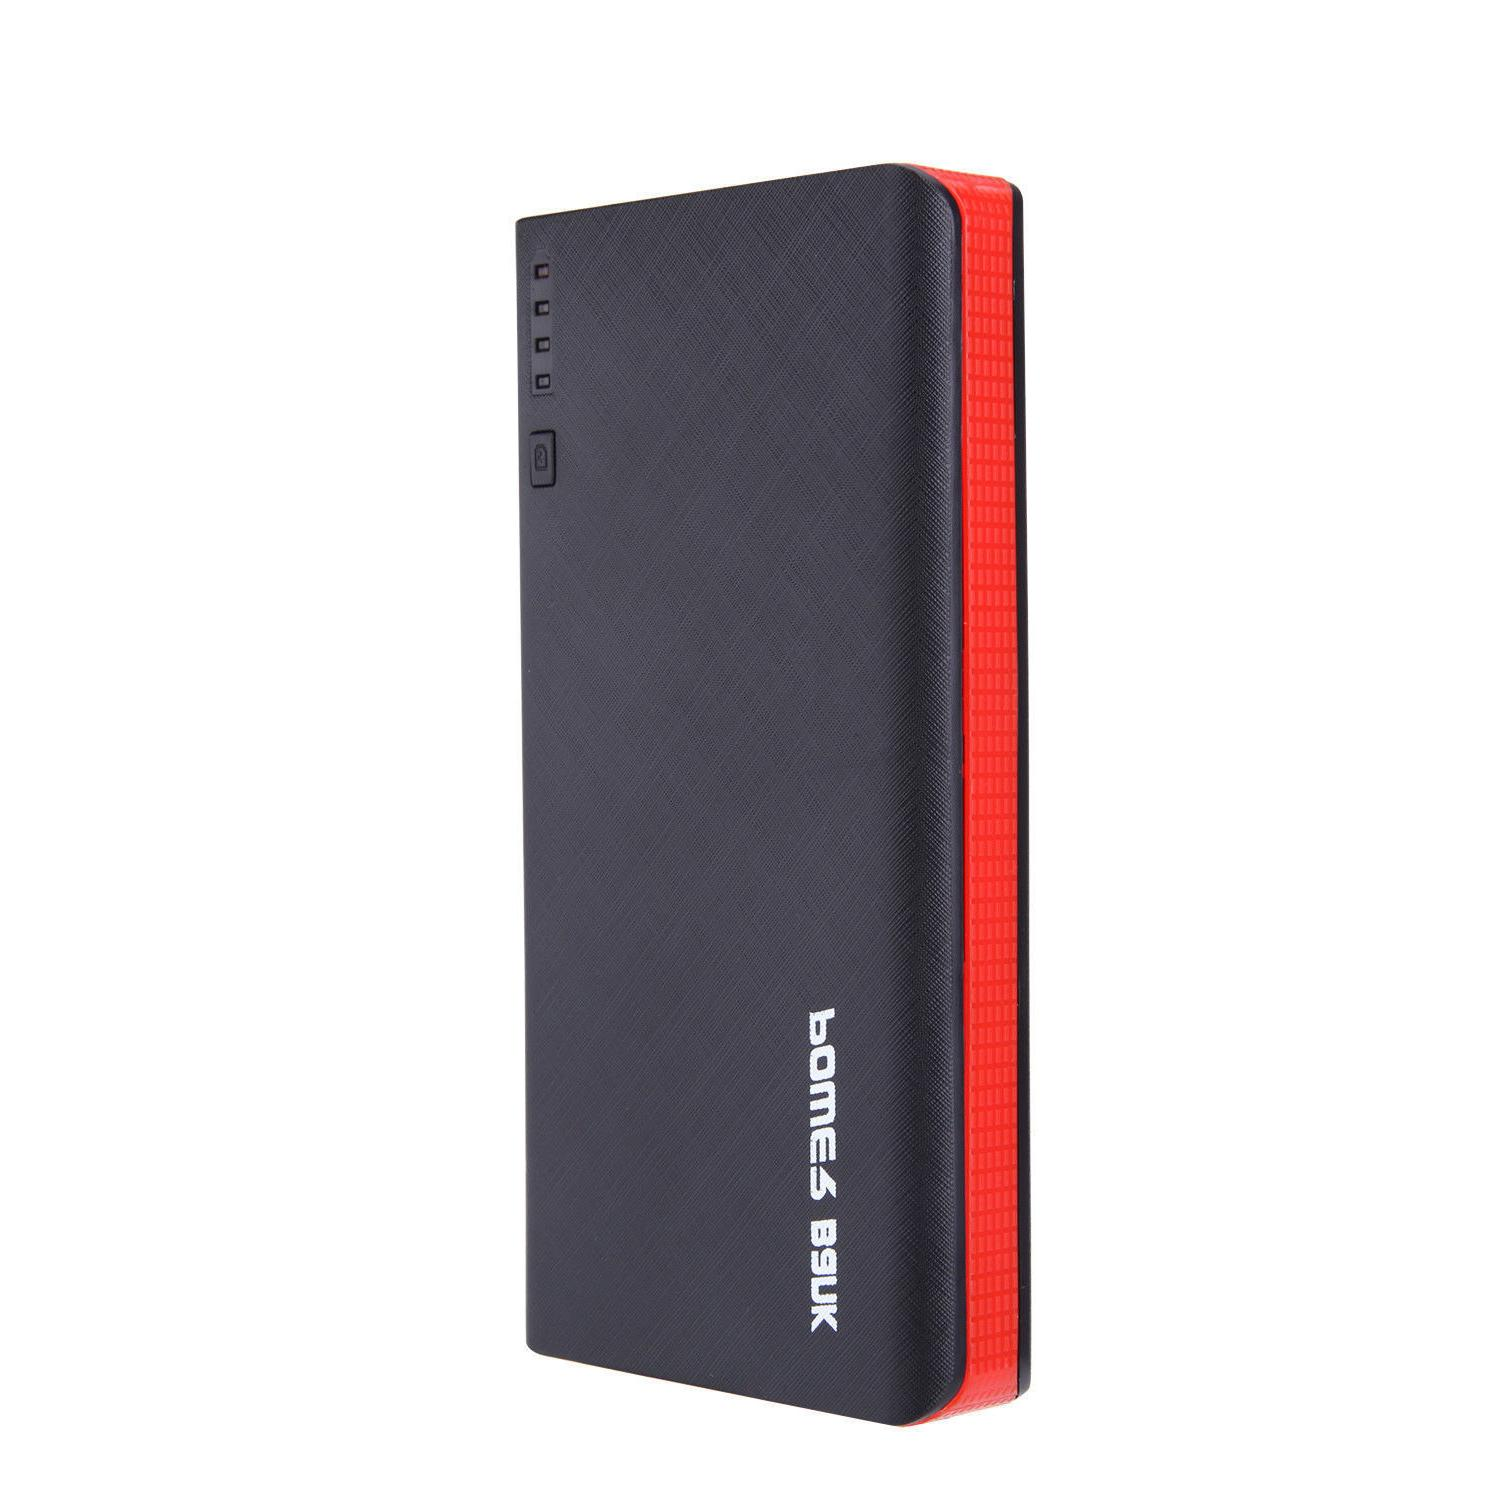 20000mAh 4 External Power Bank LED Charger for Cell Phone